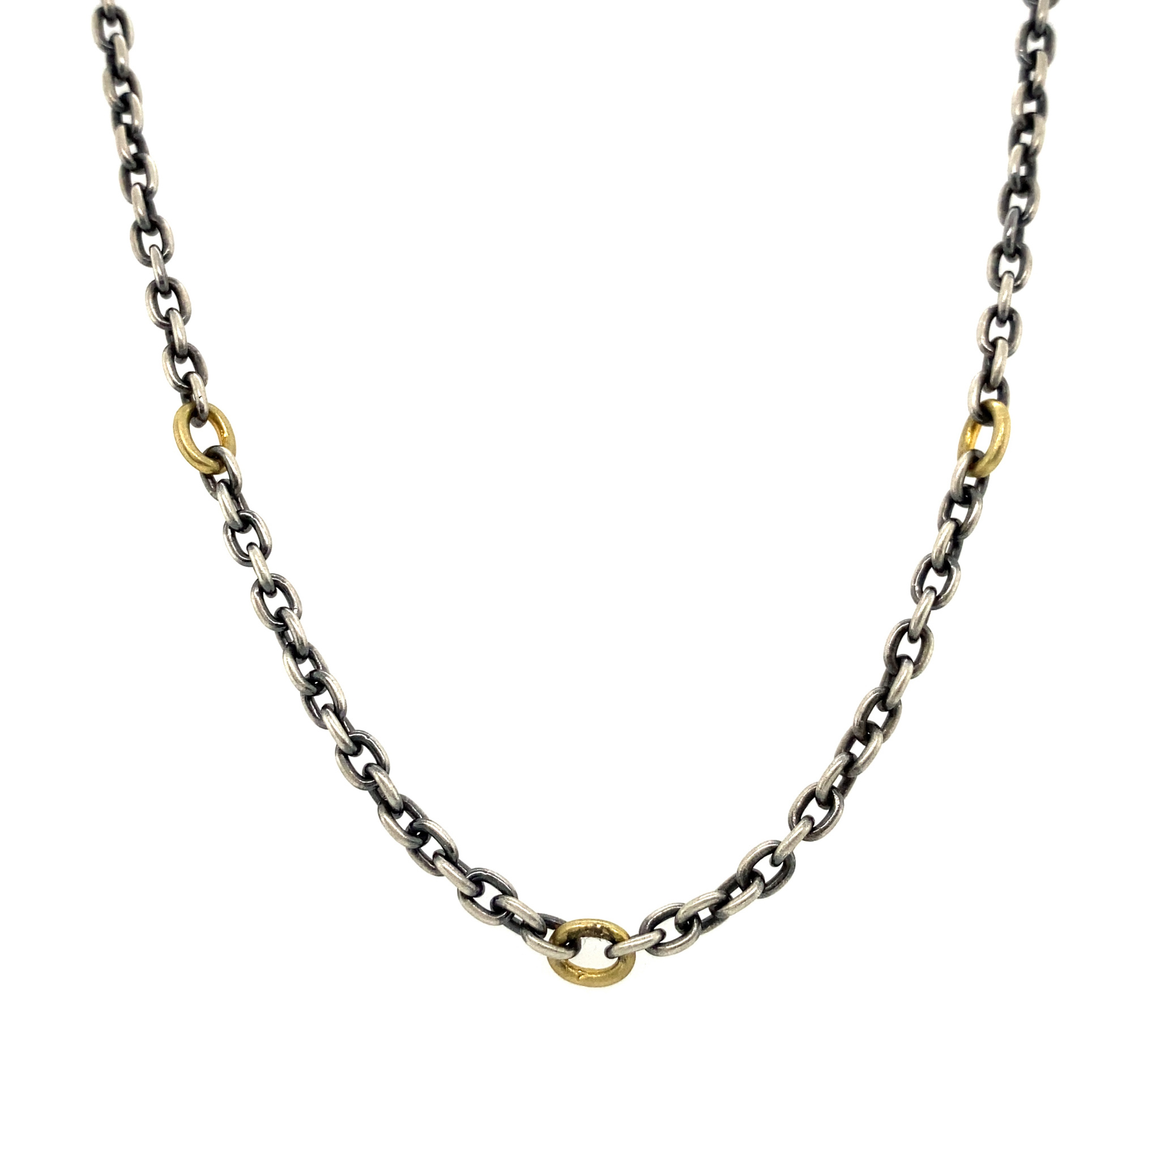 Oxidized Sterling Silver and Yellow Gold Link Long Chain - Lesley Ann Jewels